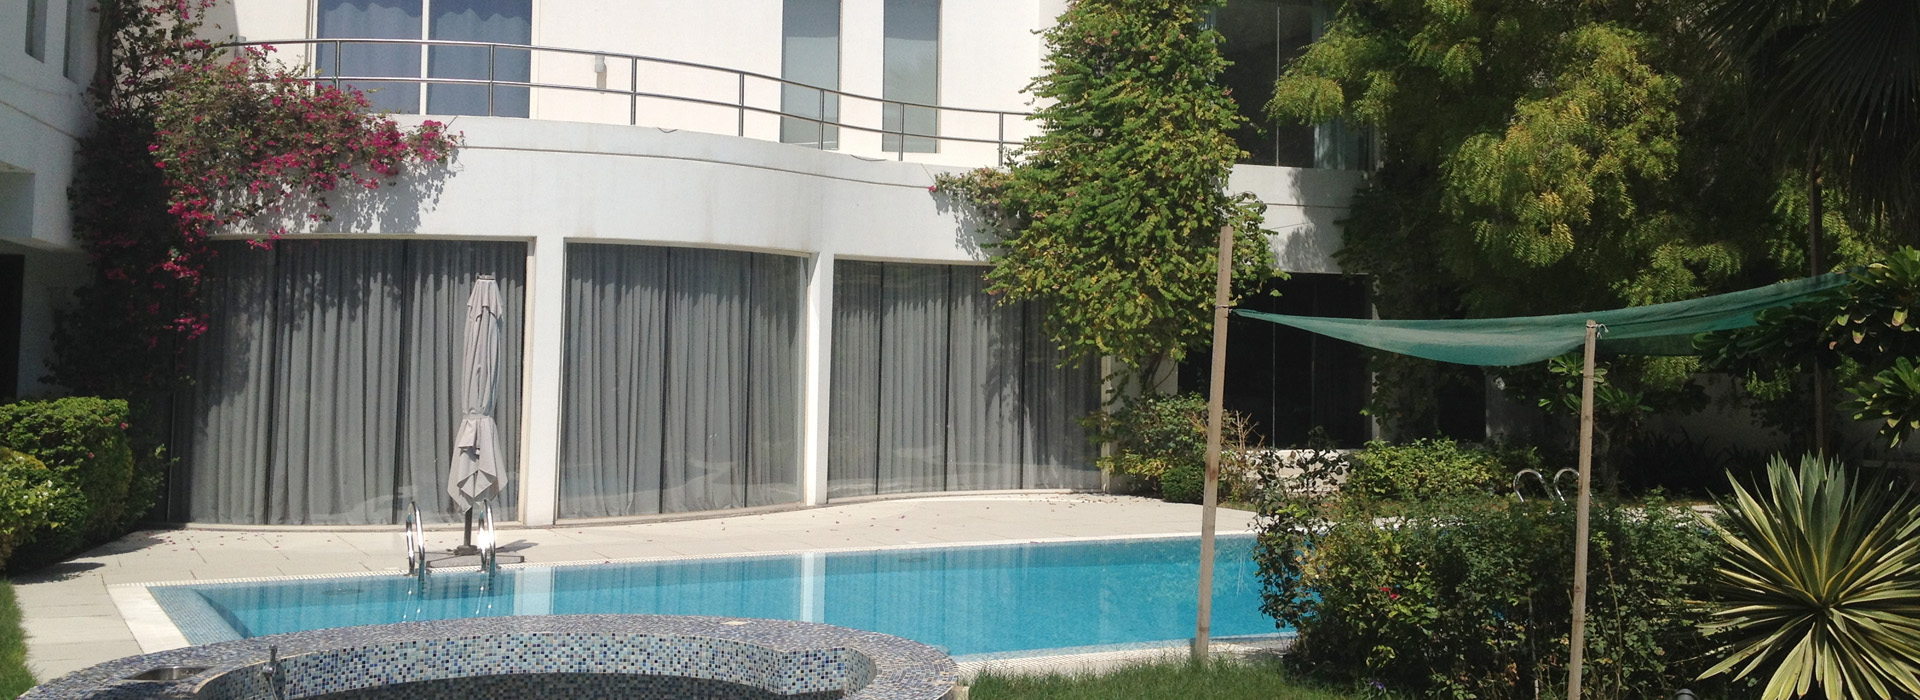 Luxury Villa in Qurtuba with Garden & Swimming Pool